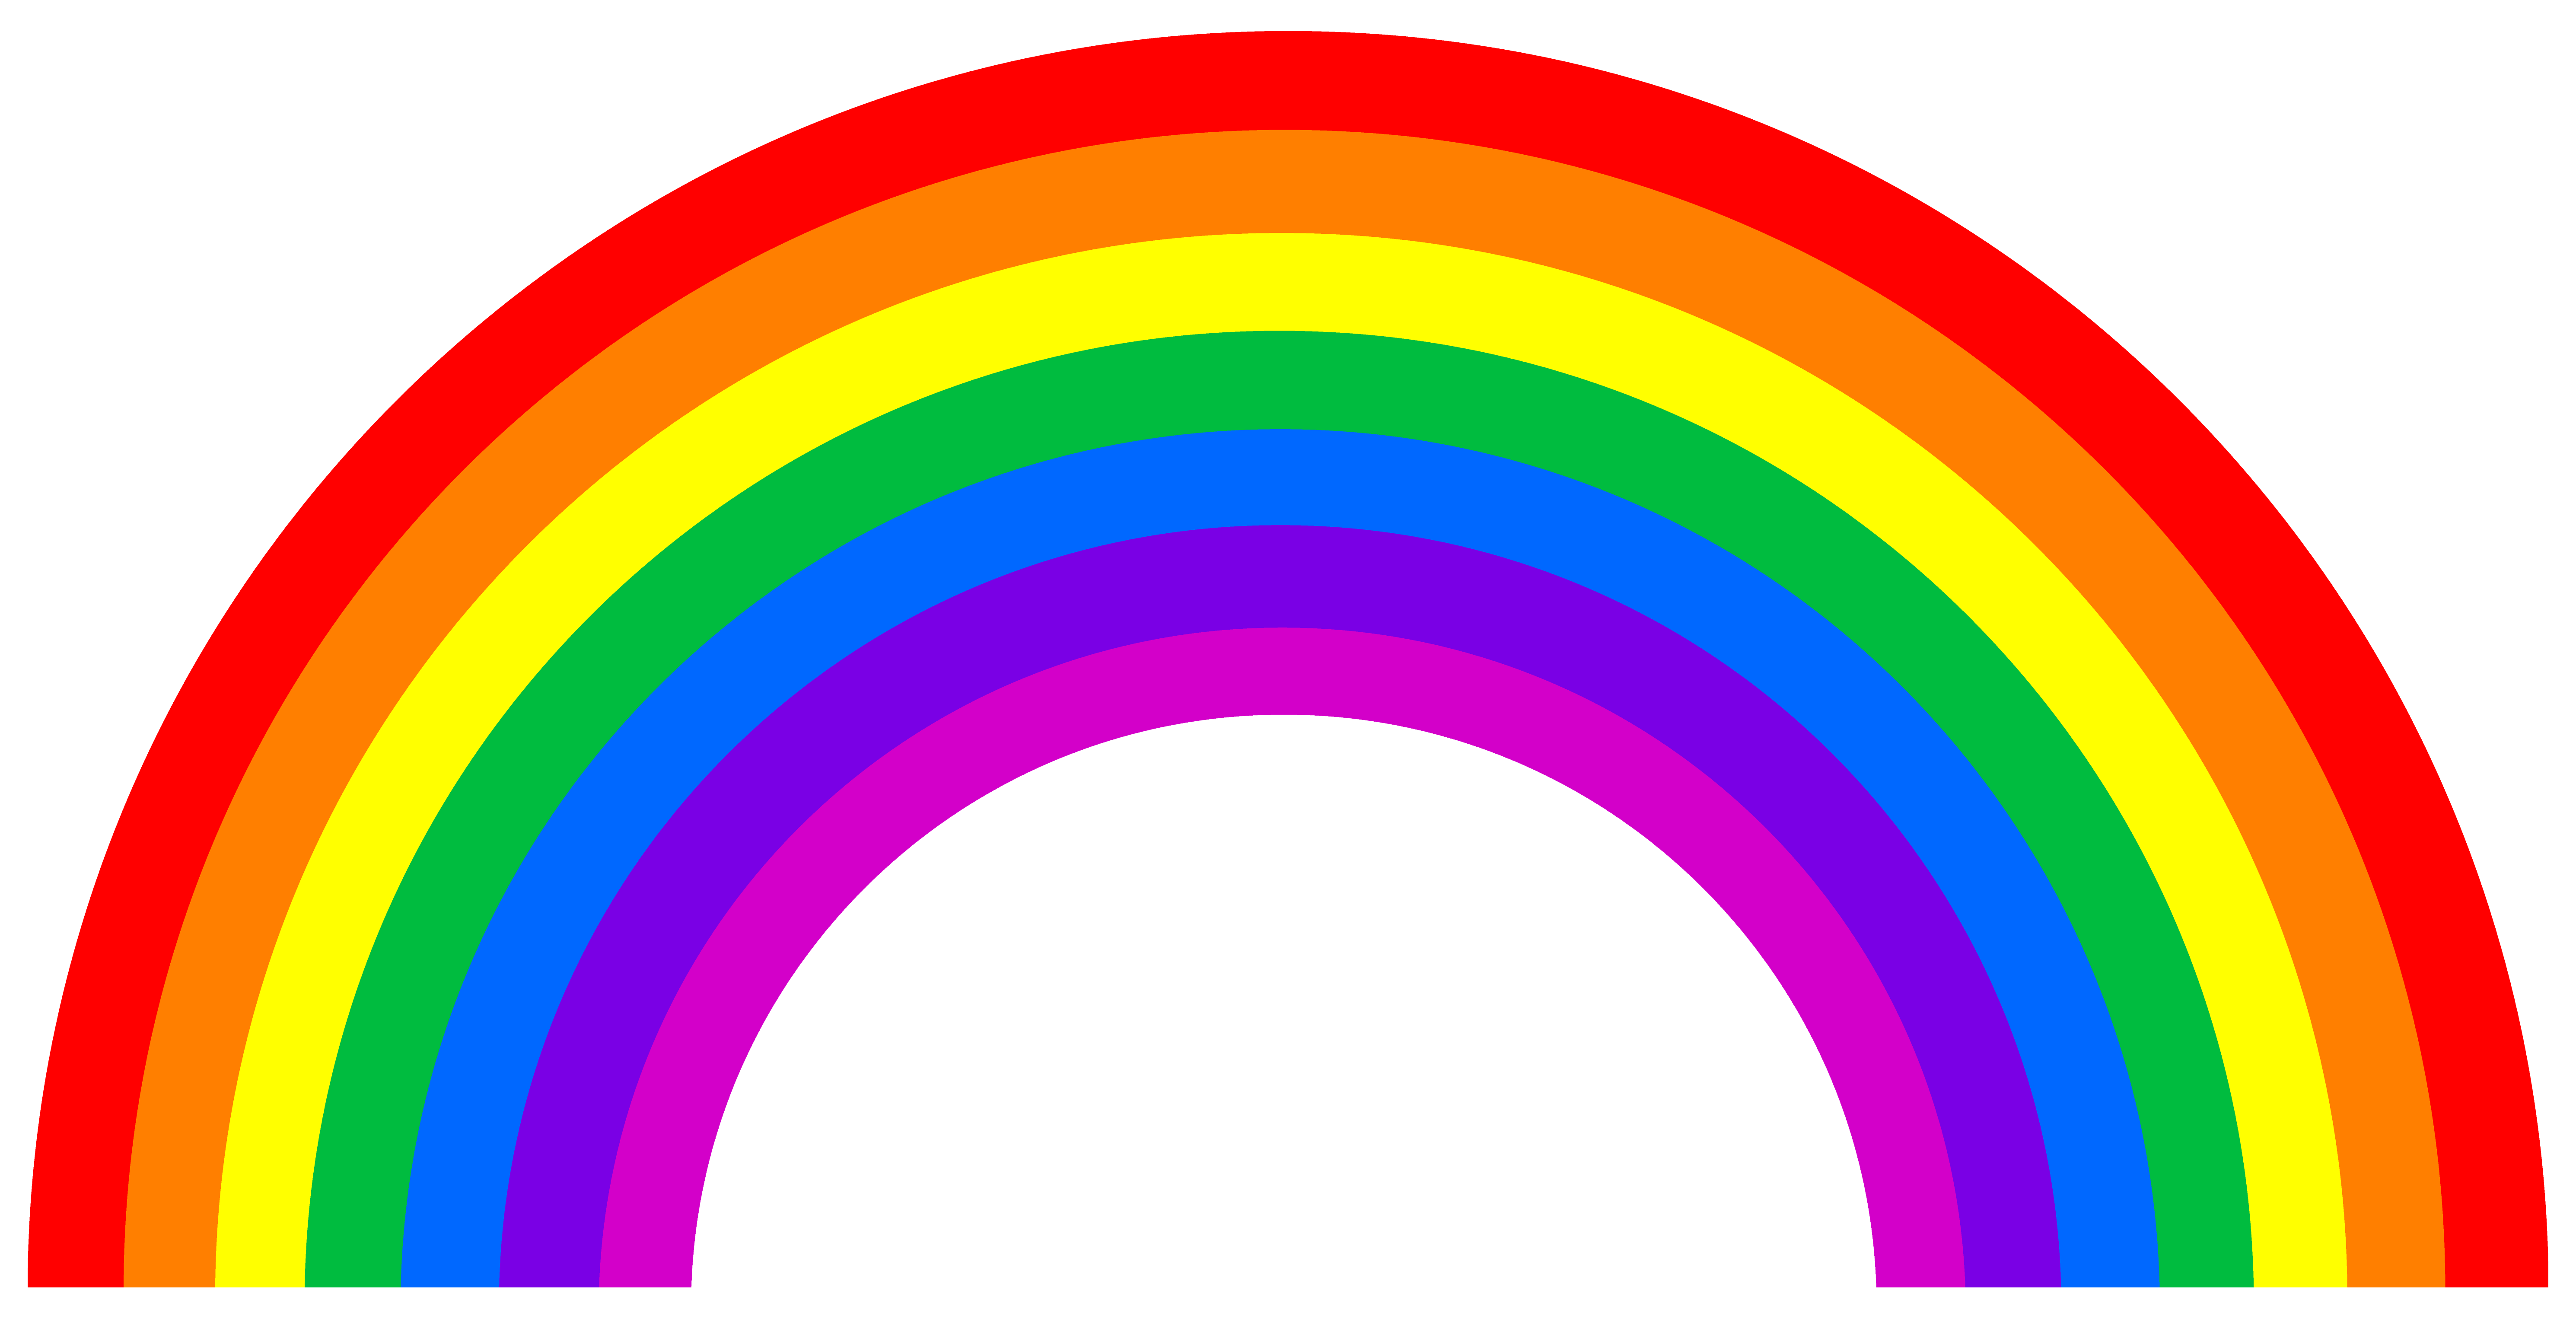 The meaning of the dream in which you saw «Rainbow» - Rainbow HD PNG